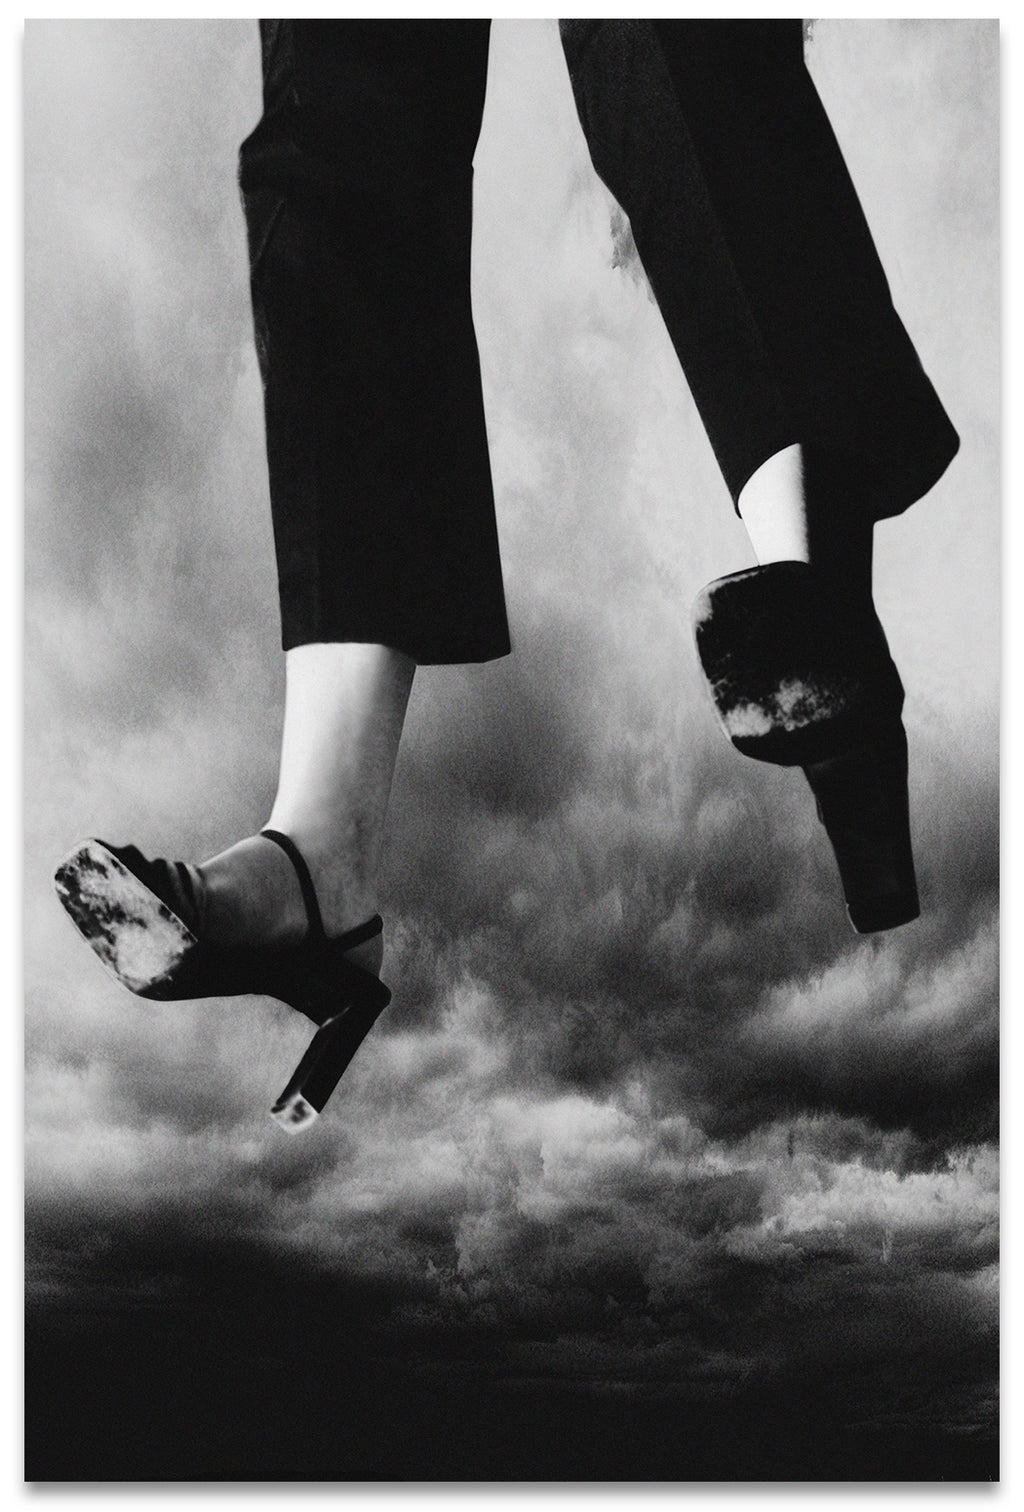 Black & White Portrait of a Woman's Legs Flying Through Stormy Skies- Fine Art Canvas Print